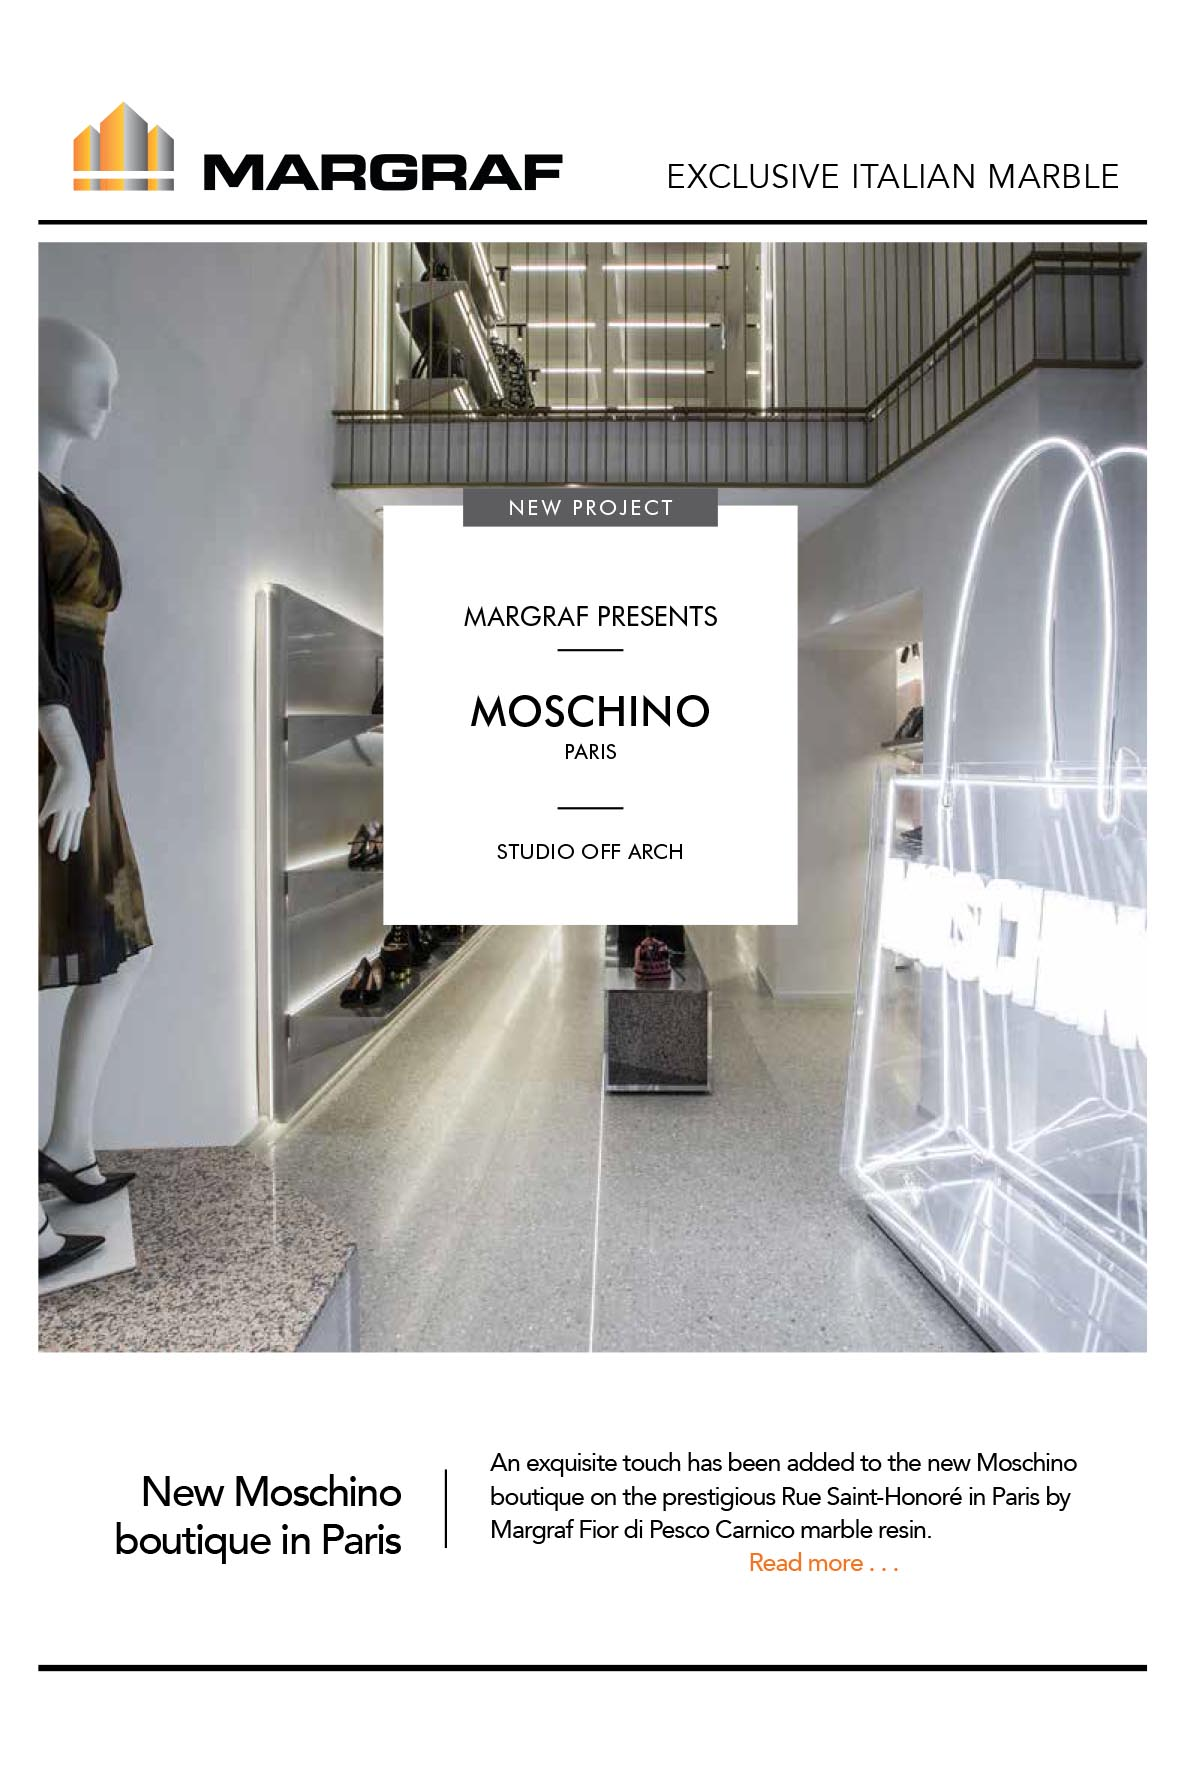 Project-Moschino-boutique-Paris-2018-1